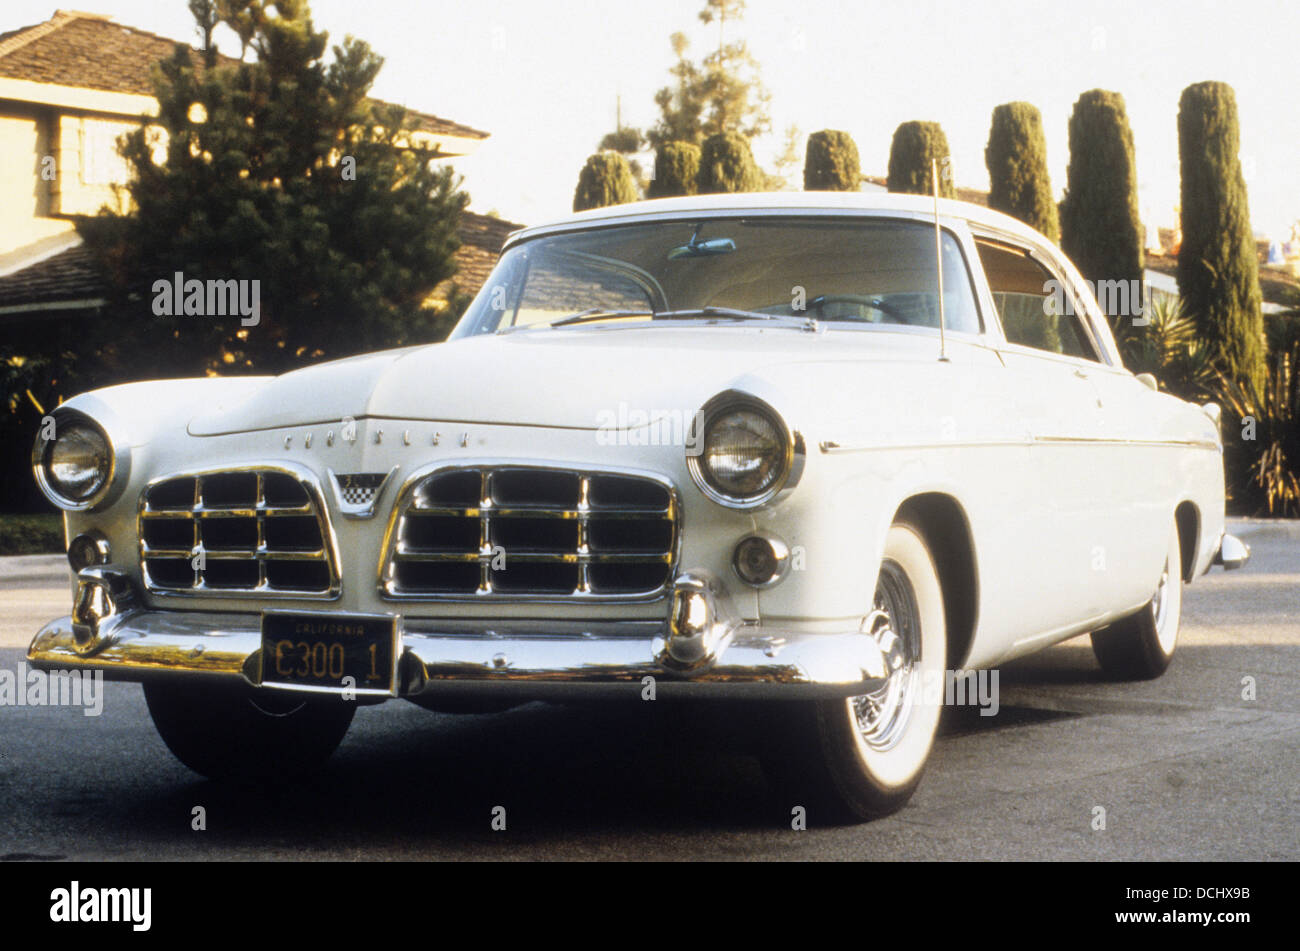 1955 CHRYSLER C-300 Stockbild